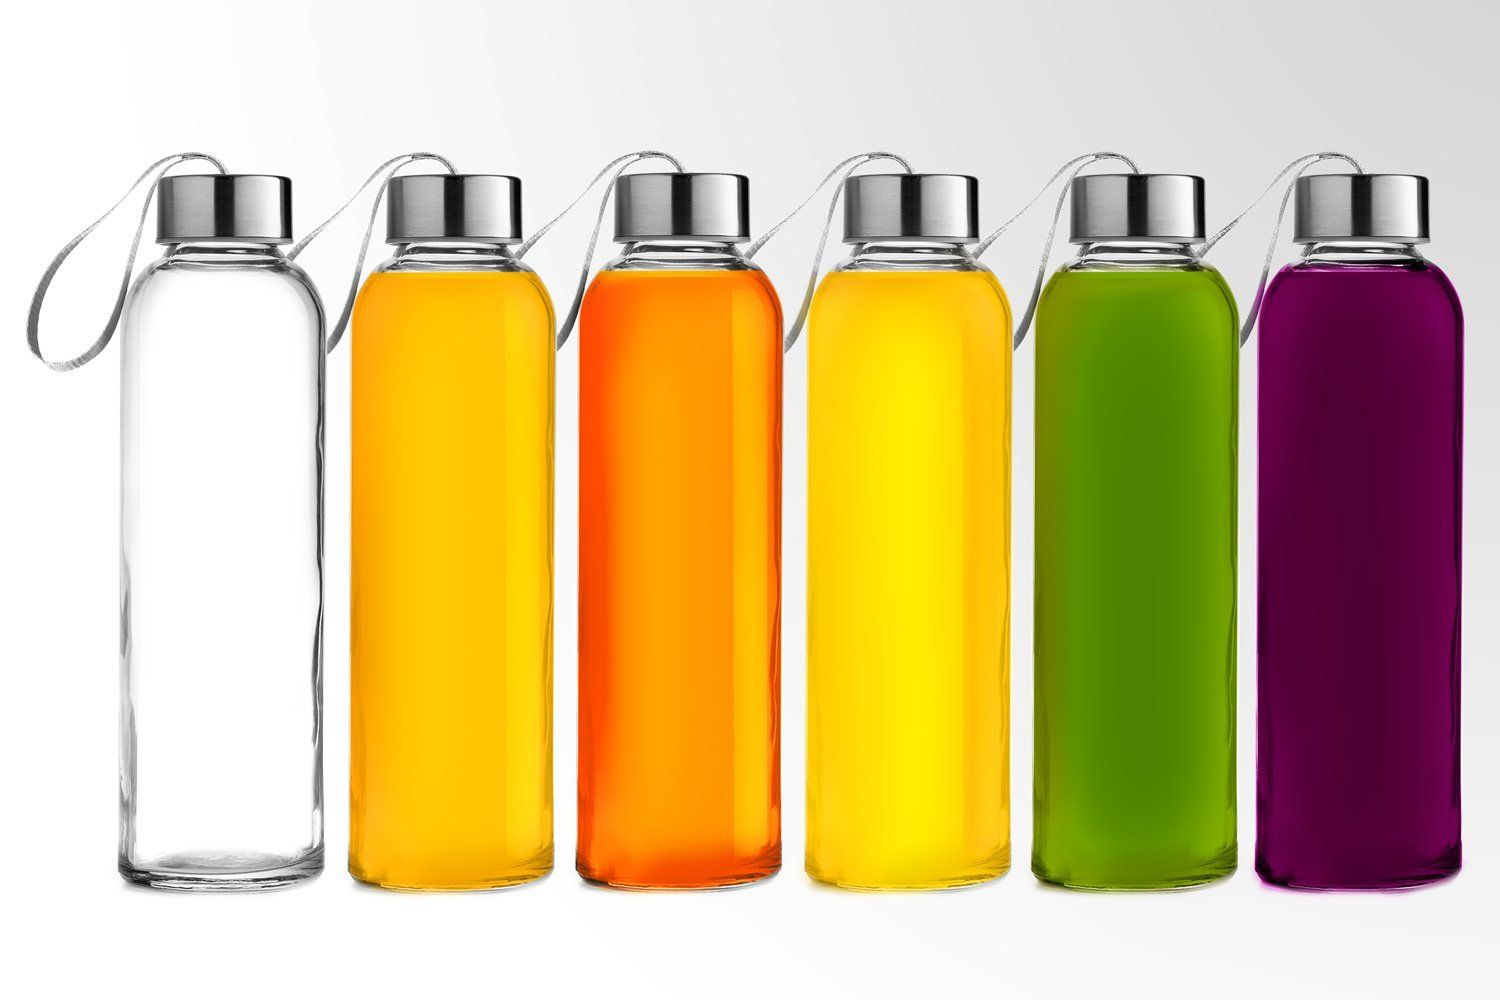 Chef's Star Glass water Bottle 6 Pack 18oz